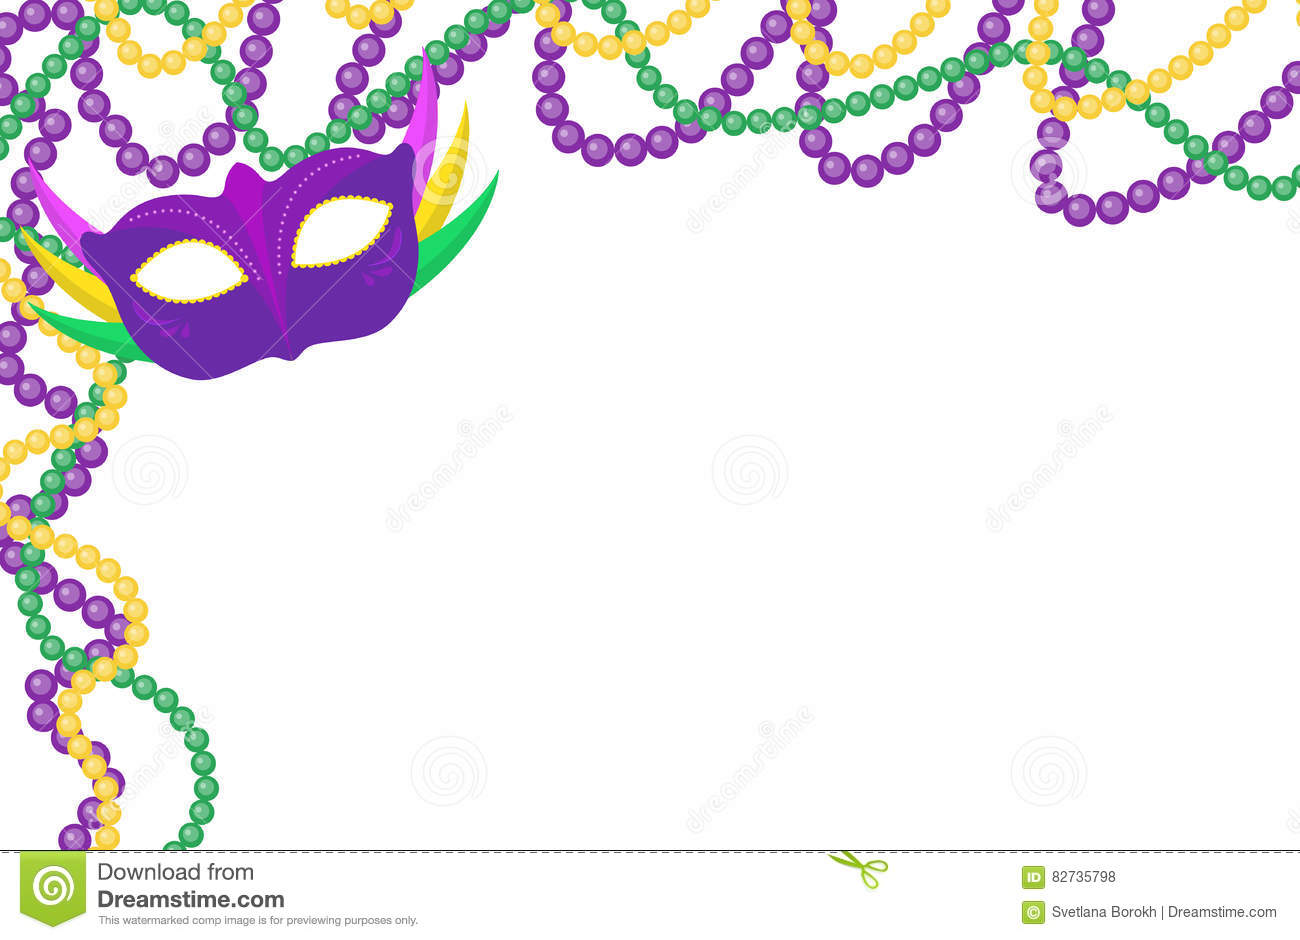 Mardi Gras Beads Colored Frame With A Mask Isolated On White